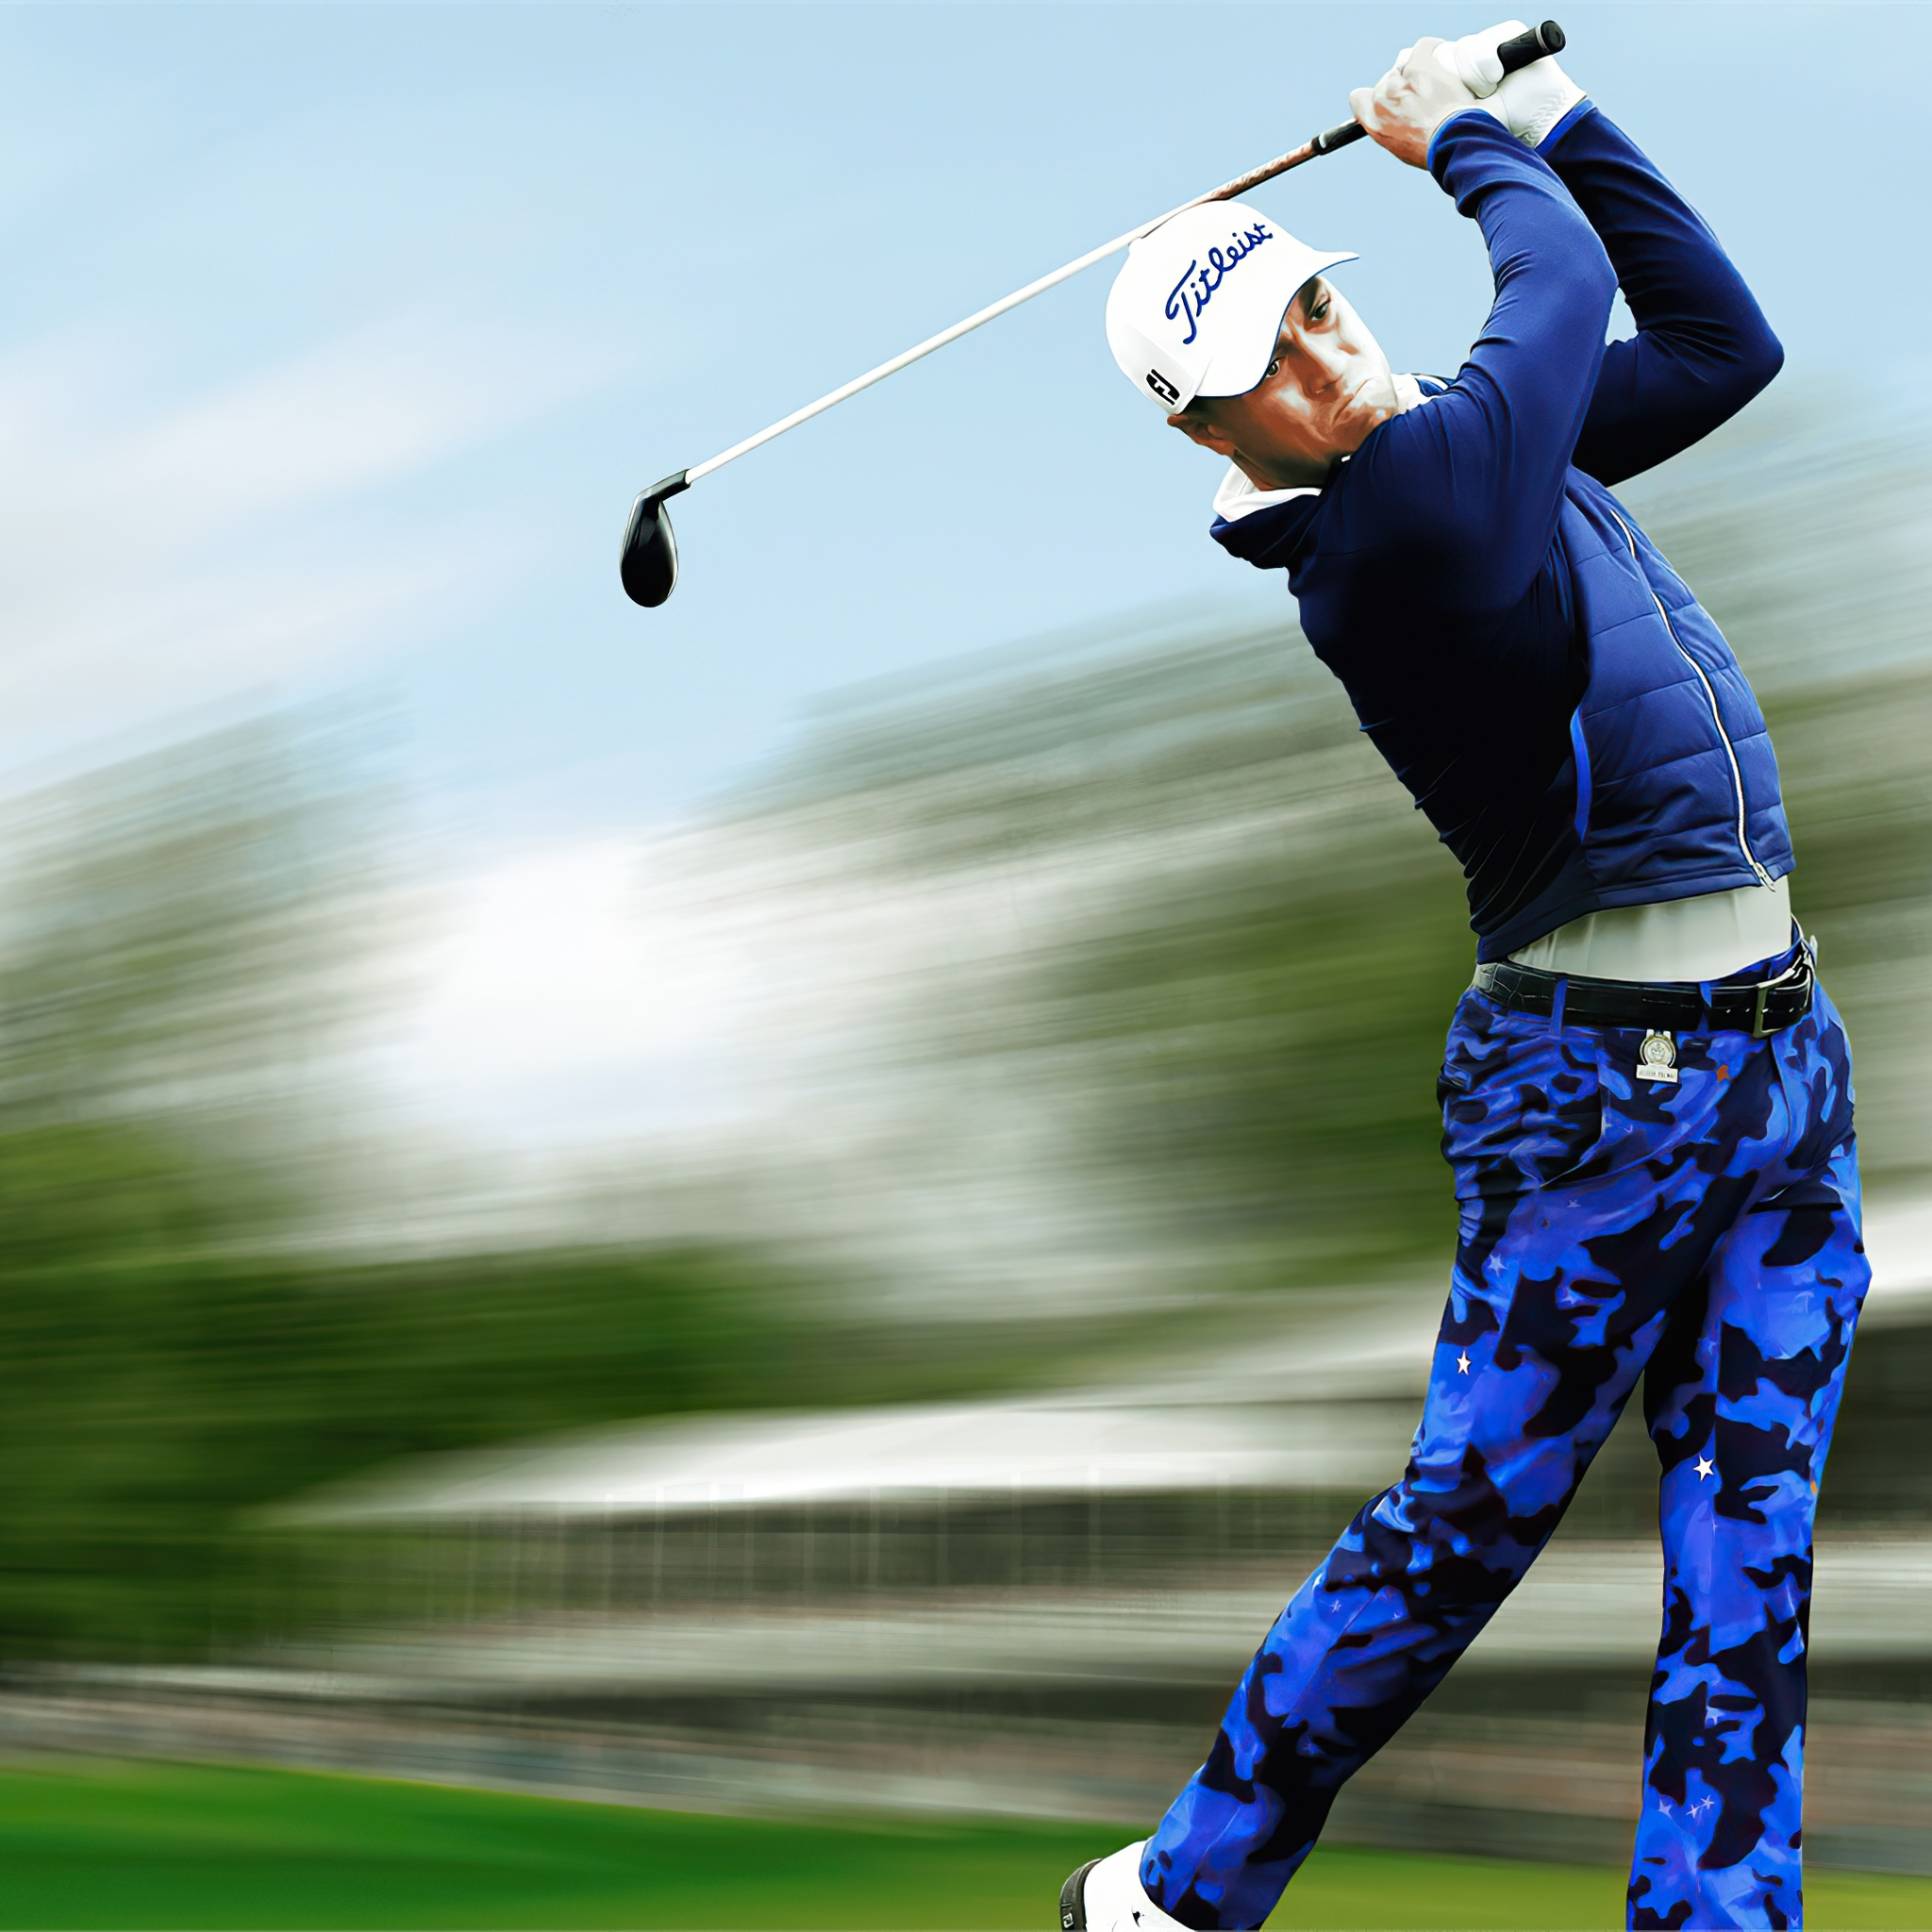 2048x2048 Pga Tour 2k21 Ipad Air Hd 4k Wallpapers Images Backgrounds Photos And Pictures